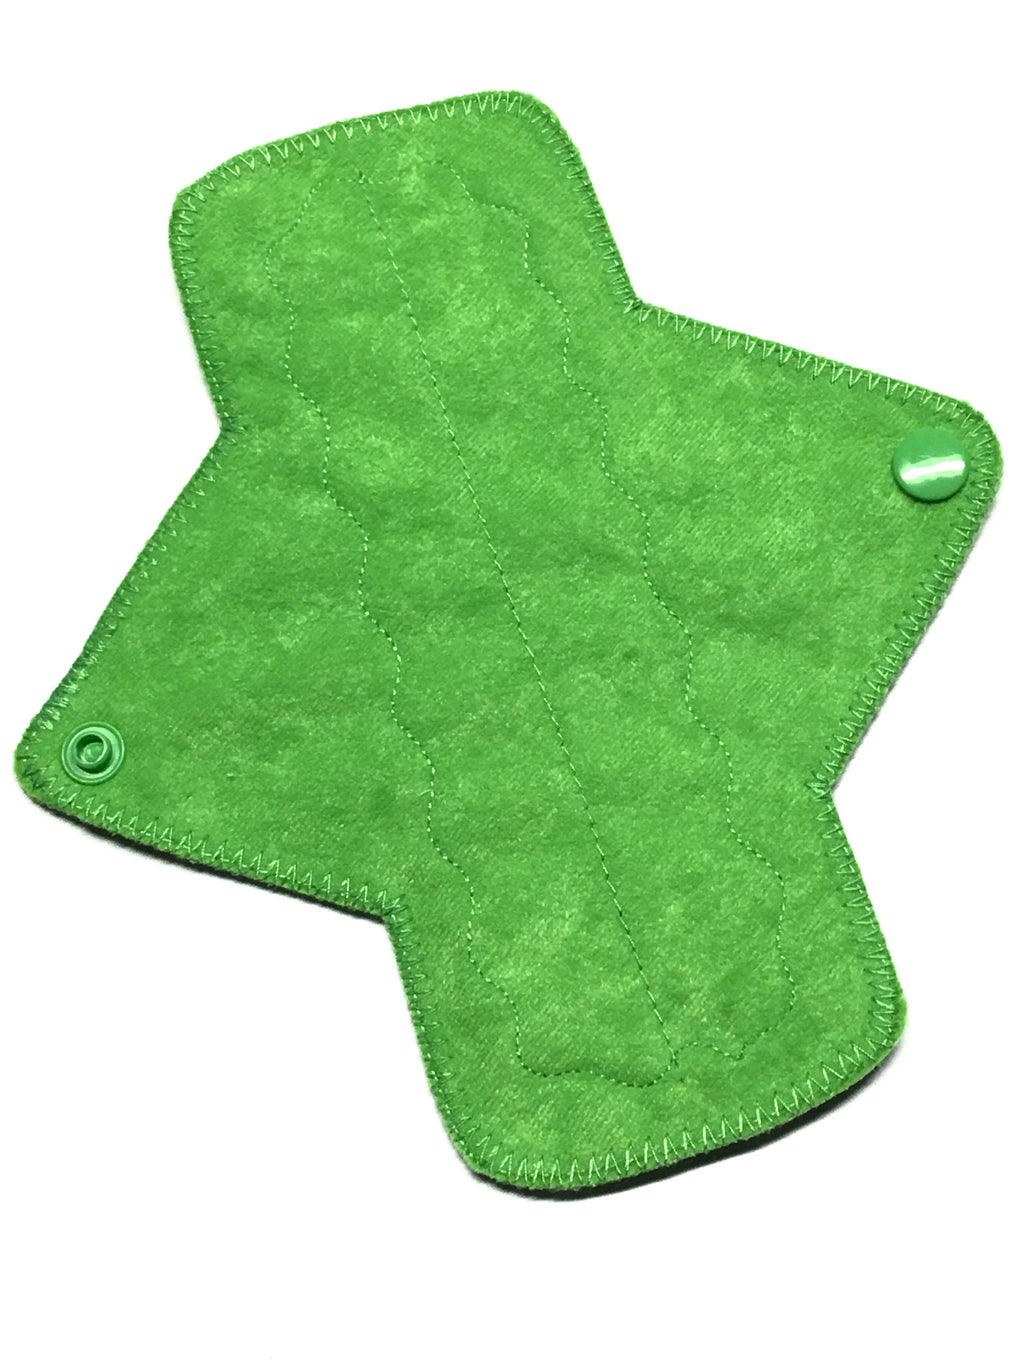 7 Inch Ultra Thin Suedecloth NINJA Pad (moderate-heavy) Absorbency in Fresh